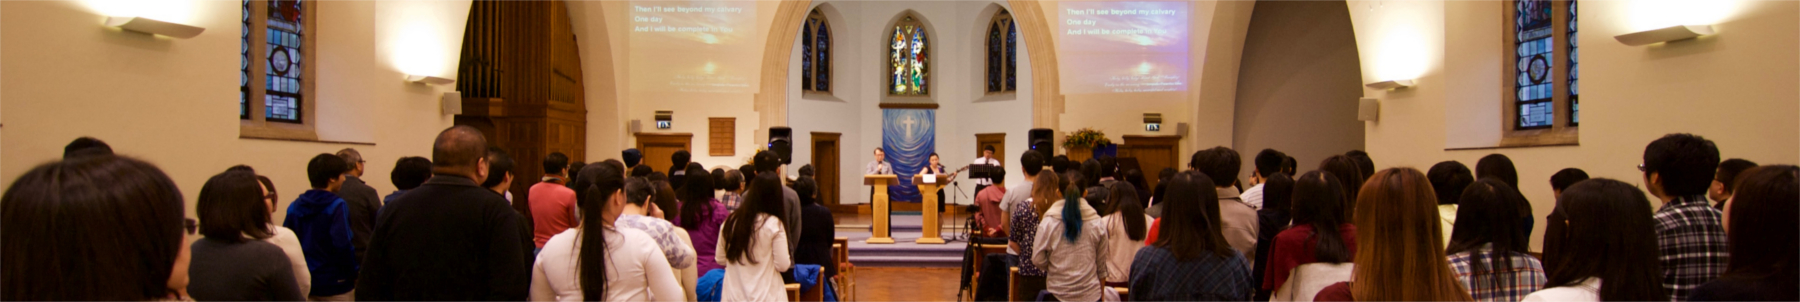 A church catering for the Chinese community in Bristol, UK. Weekly services held in Cantonese, Mandarin and English.